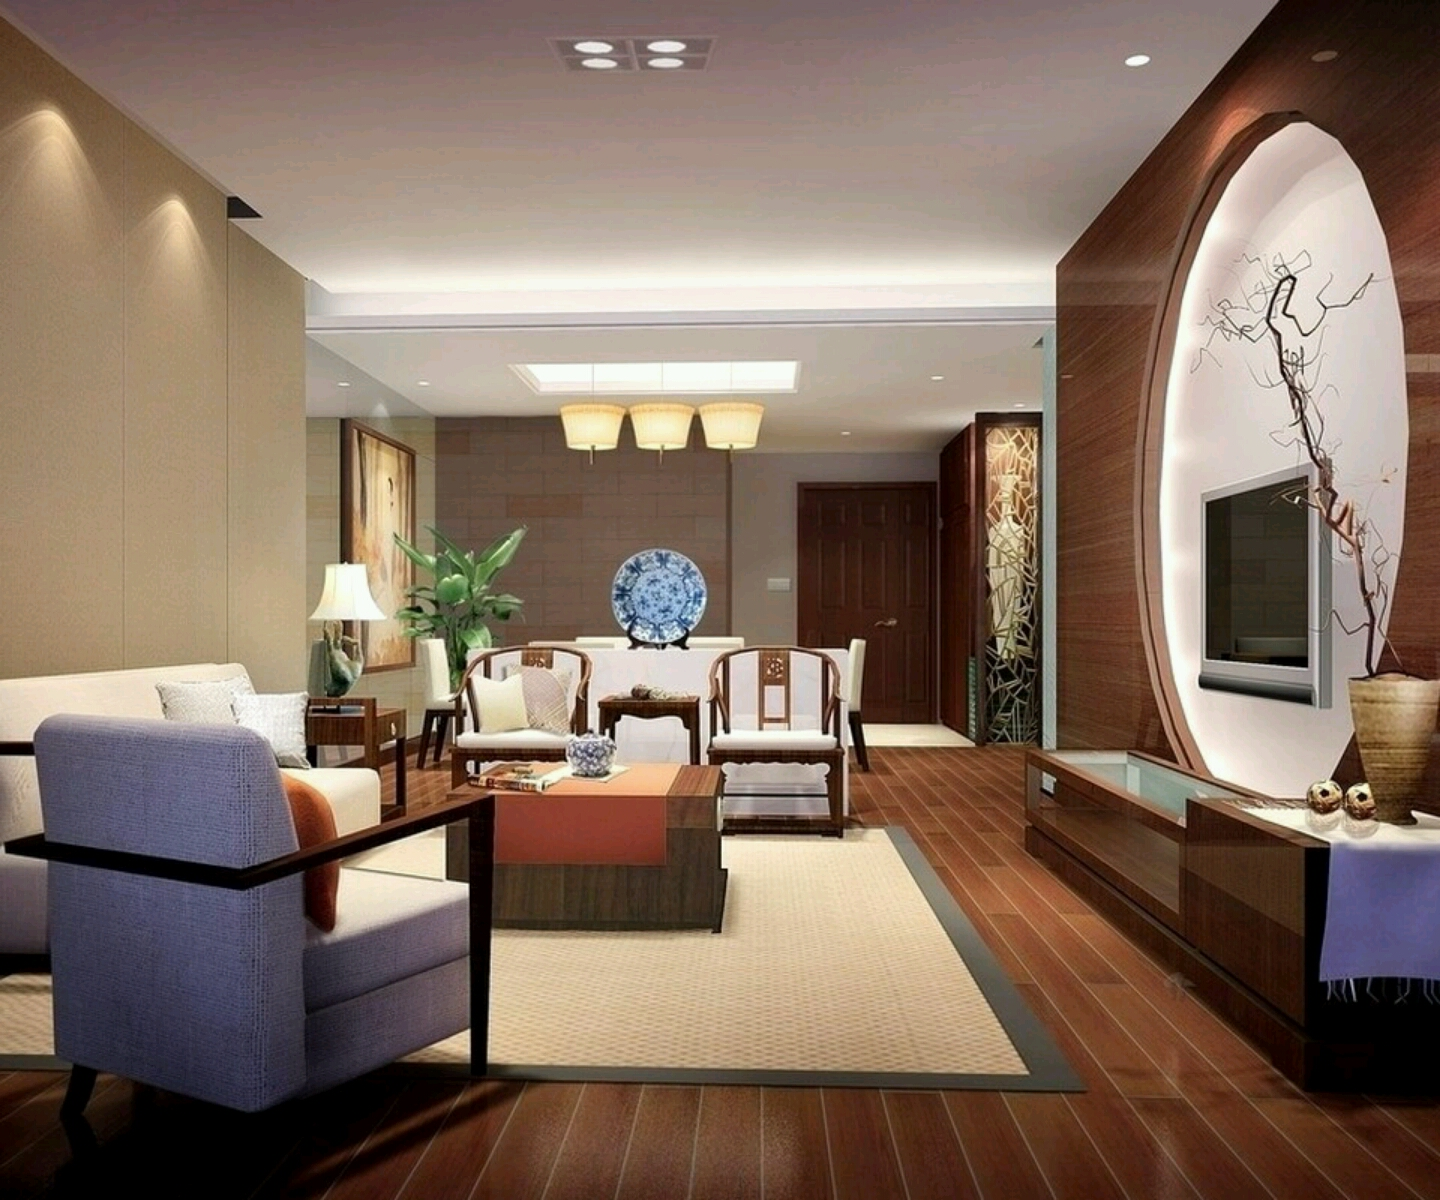 Luxury homes interior decoration living room designs ideas for Living room design ideas